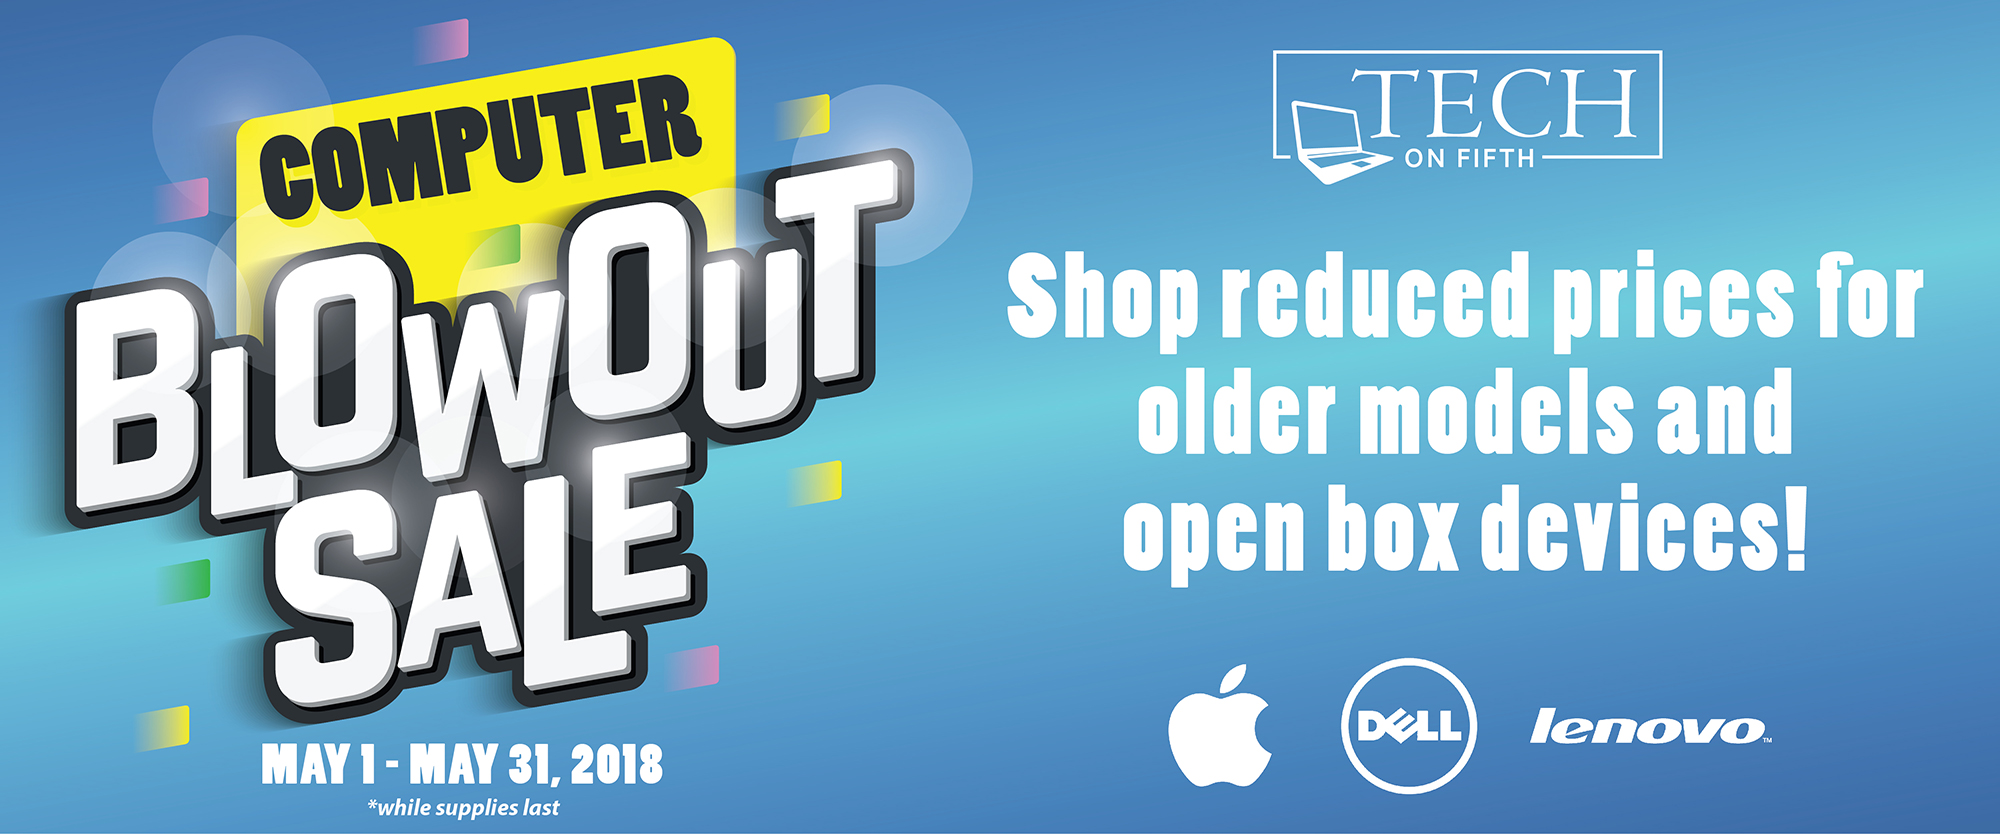 Computer Blowout - Shop reduced priced for old models and open box devices - Apple - Dell - lenovo